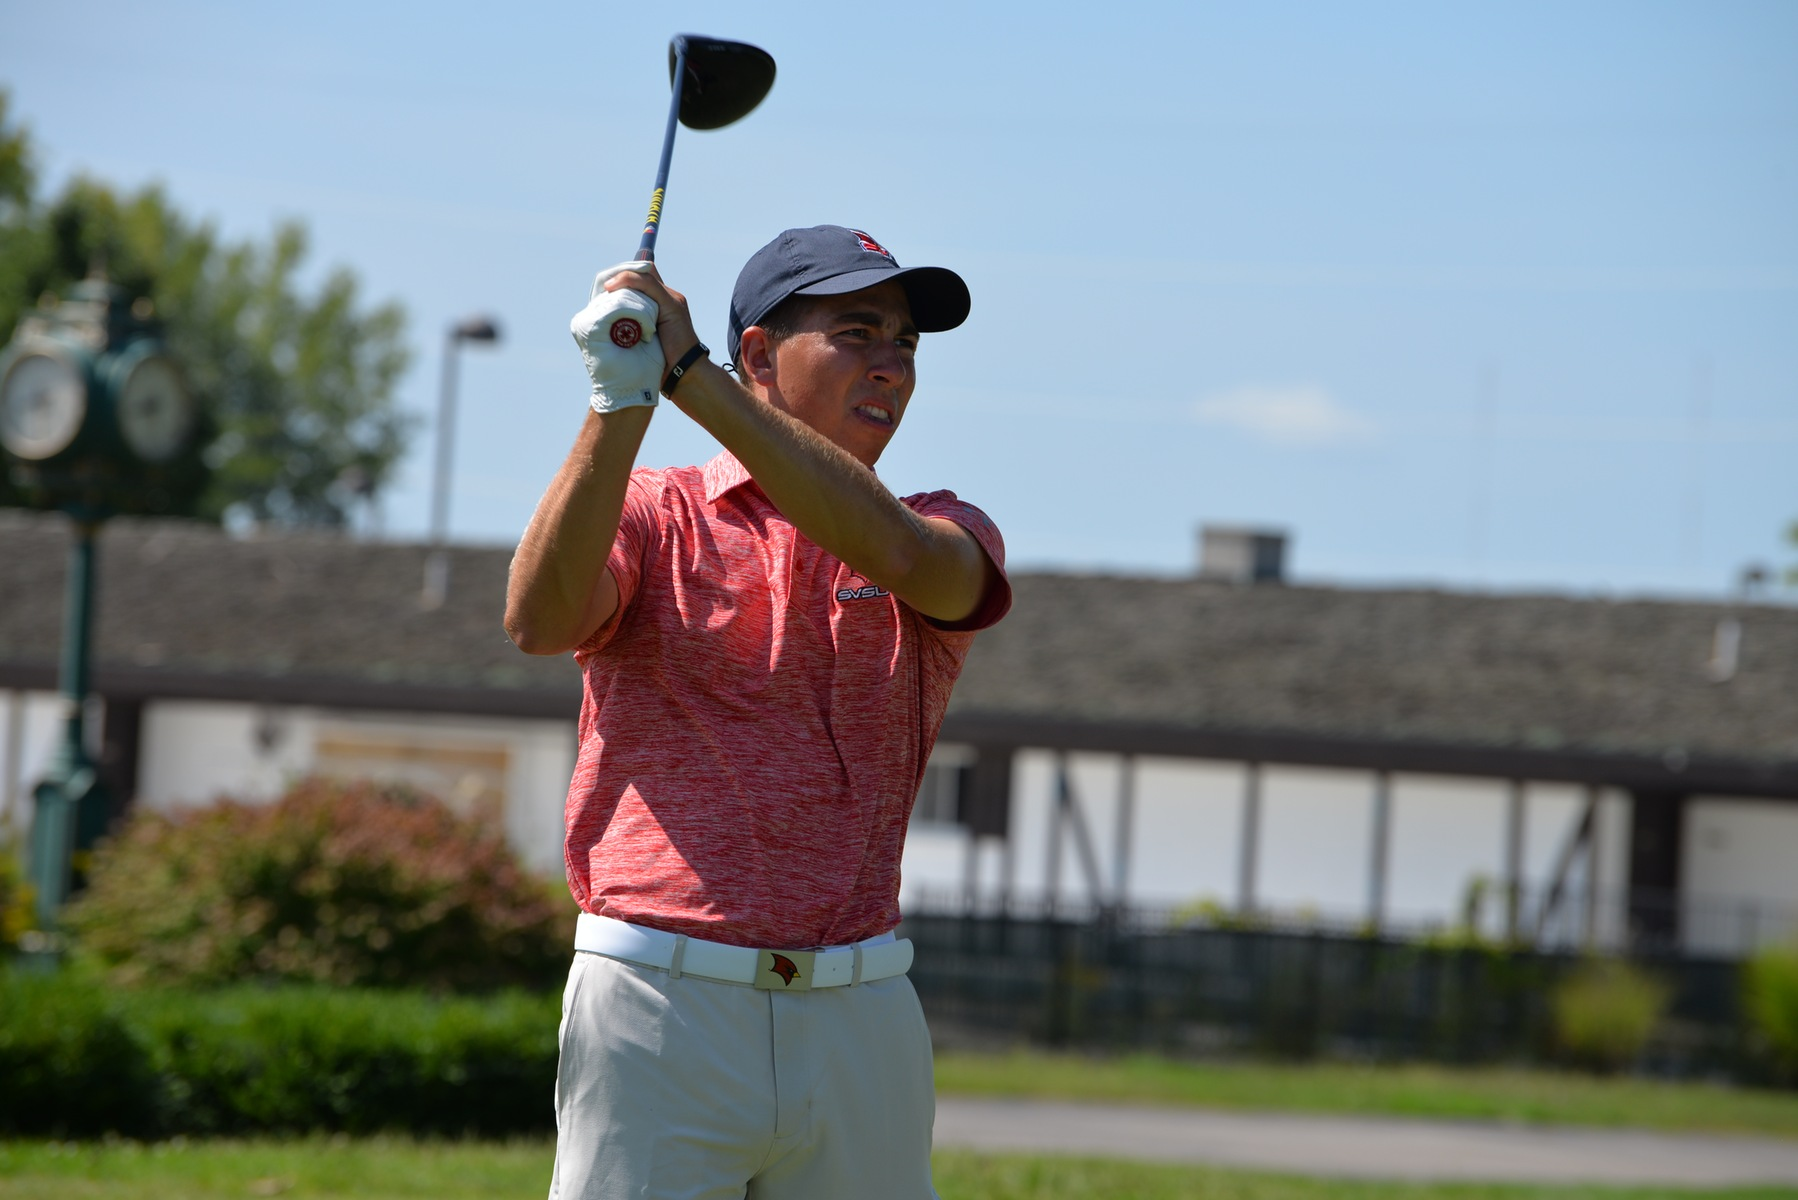 Men's Golf finishes 3rd at 2018 Kyle Ryman Memorial